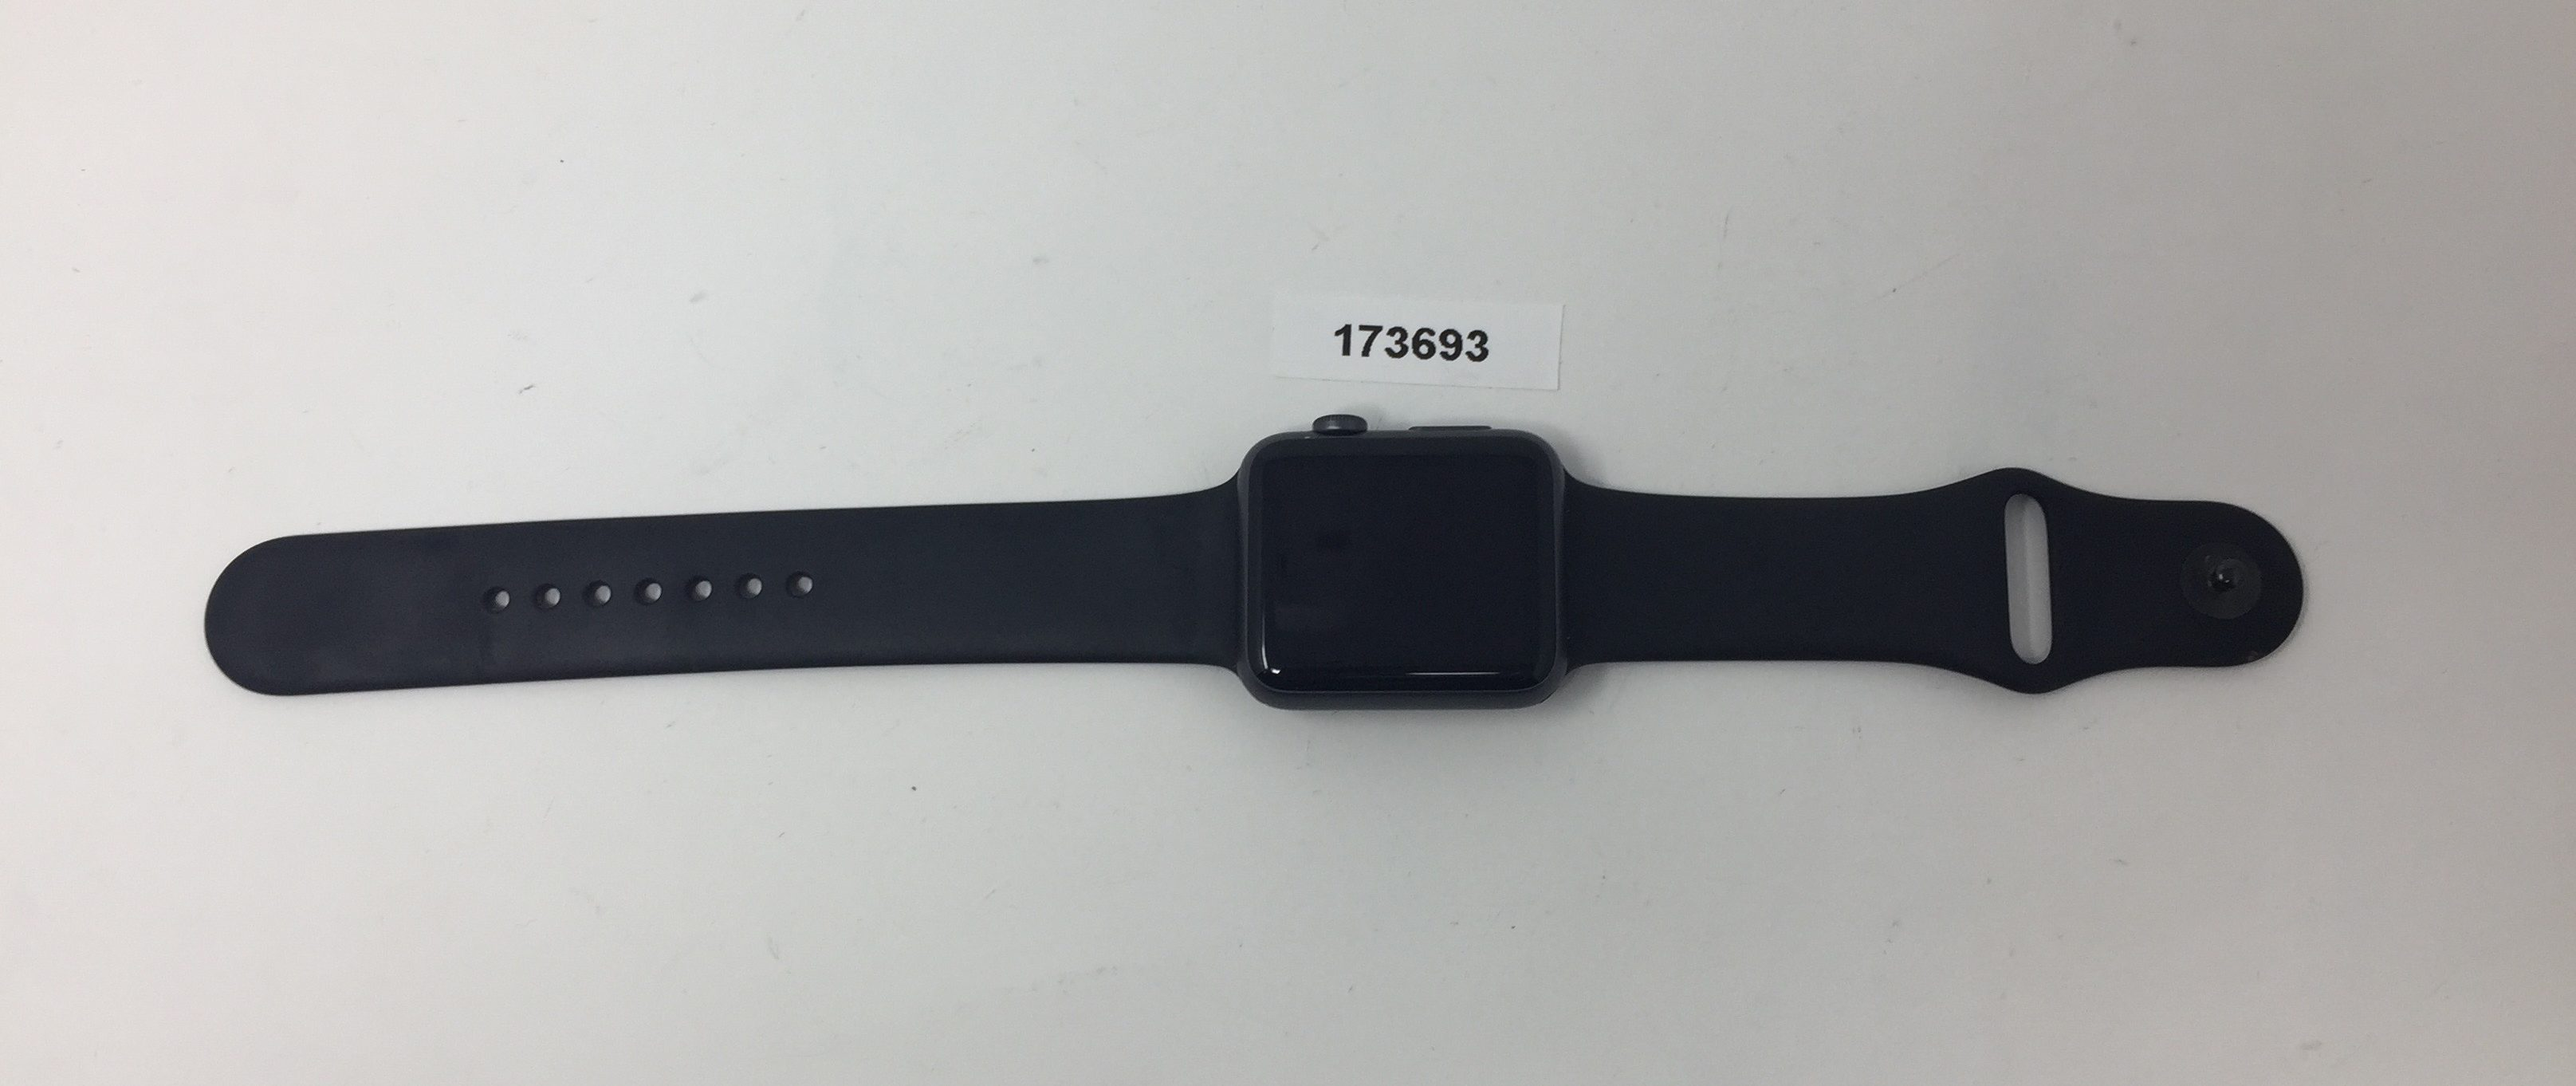 Watch Series 1 Aluminum (42mm), SPACE GRAY, Kuva 2